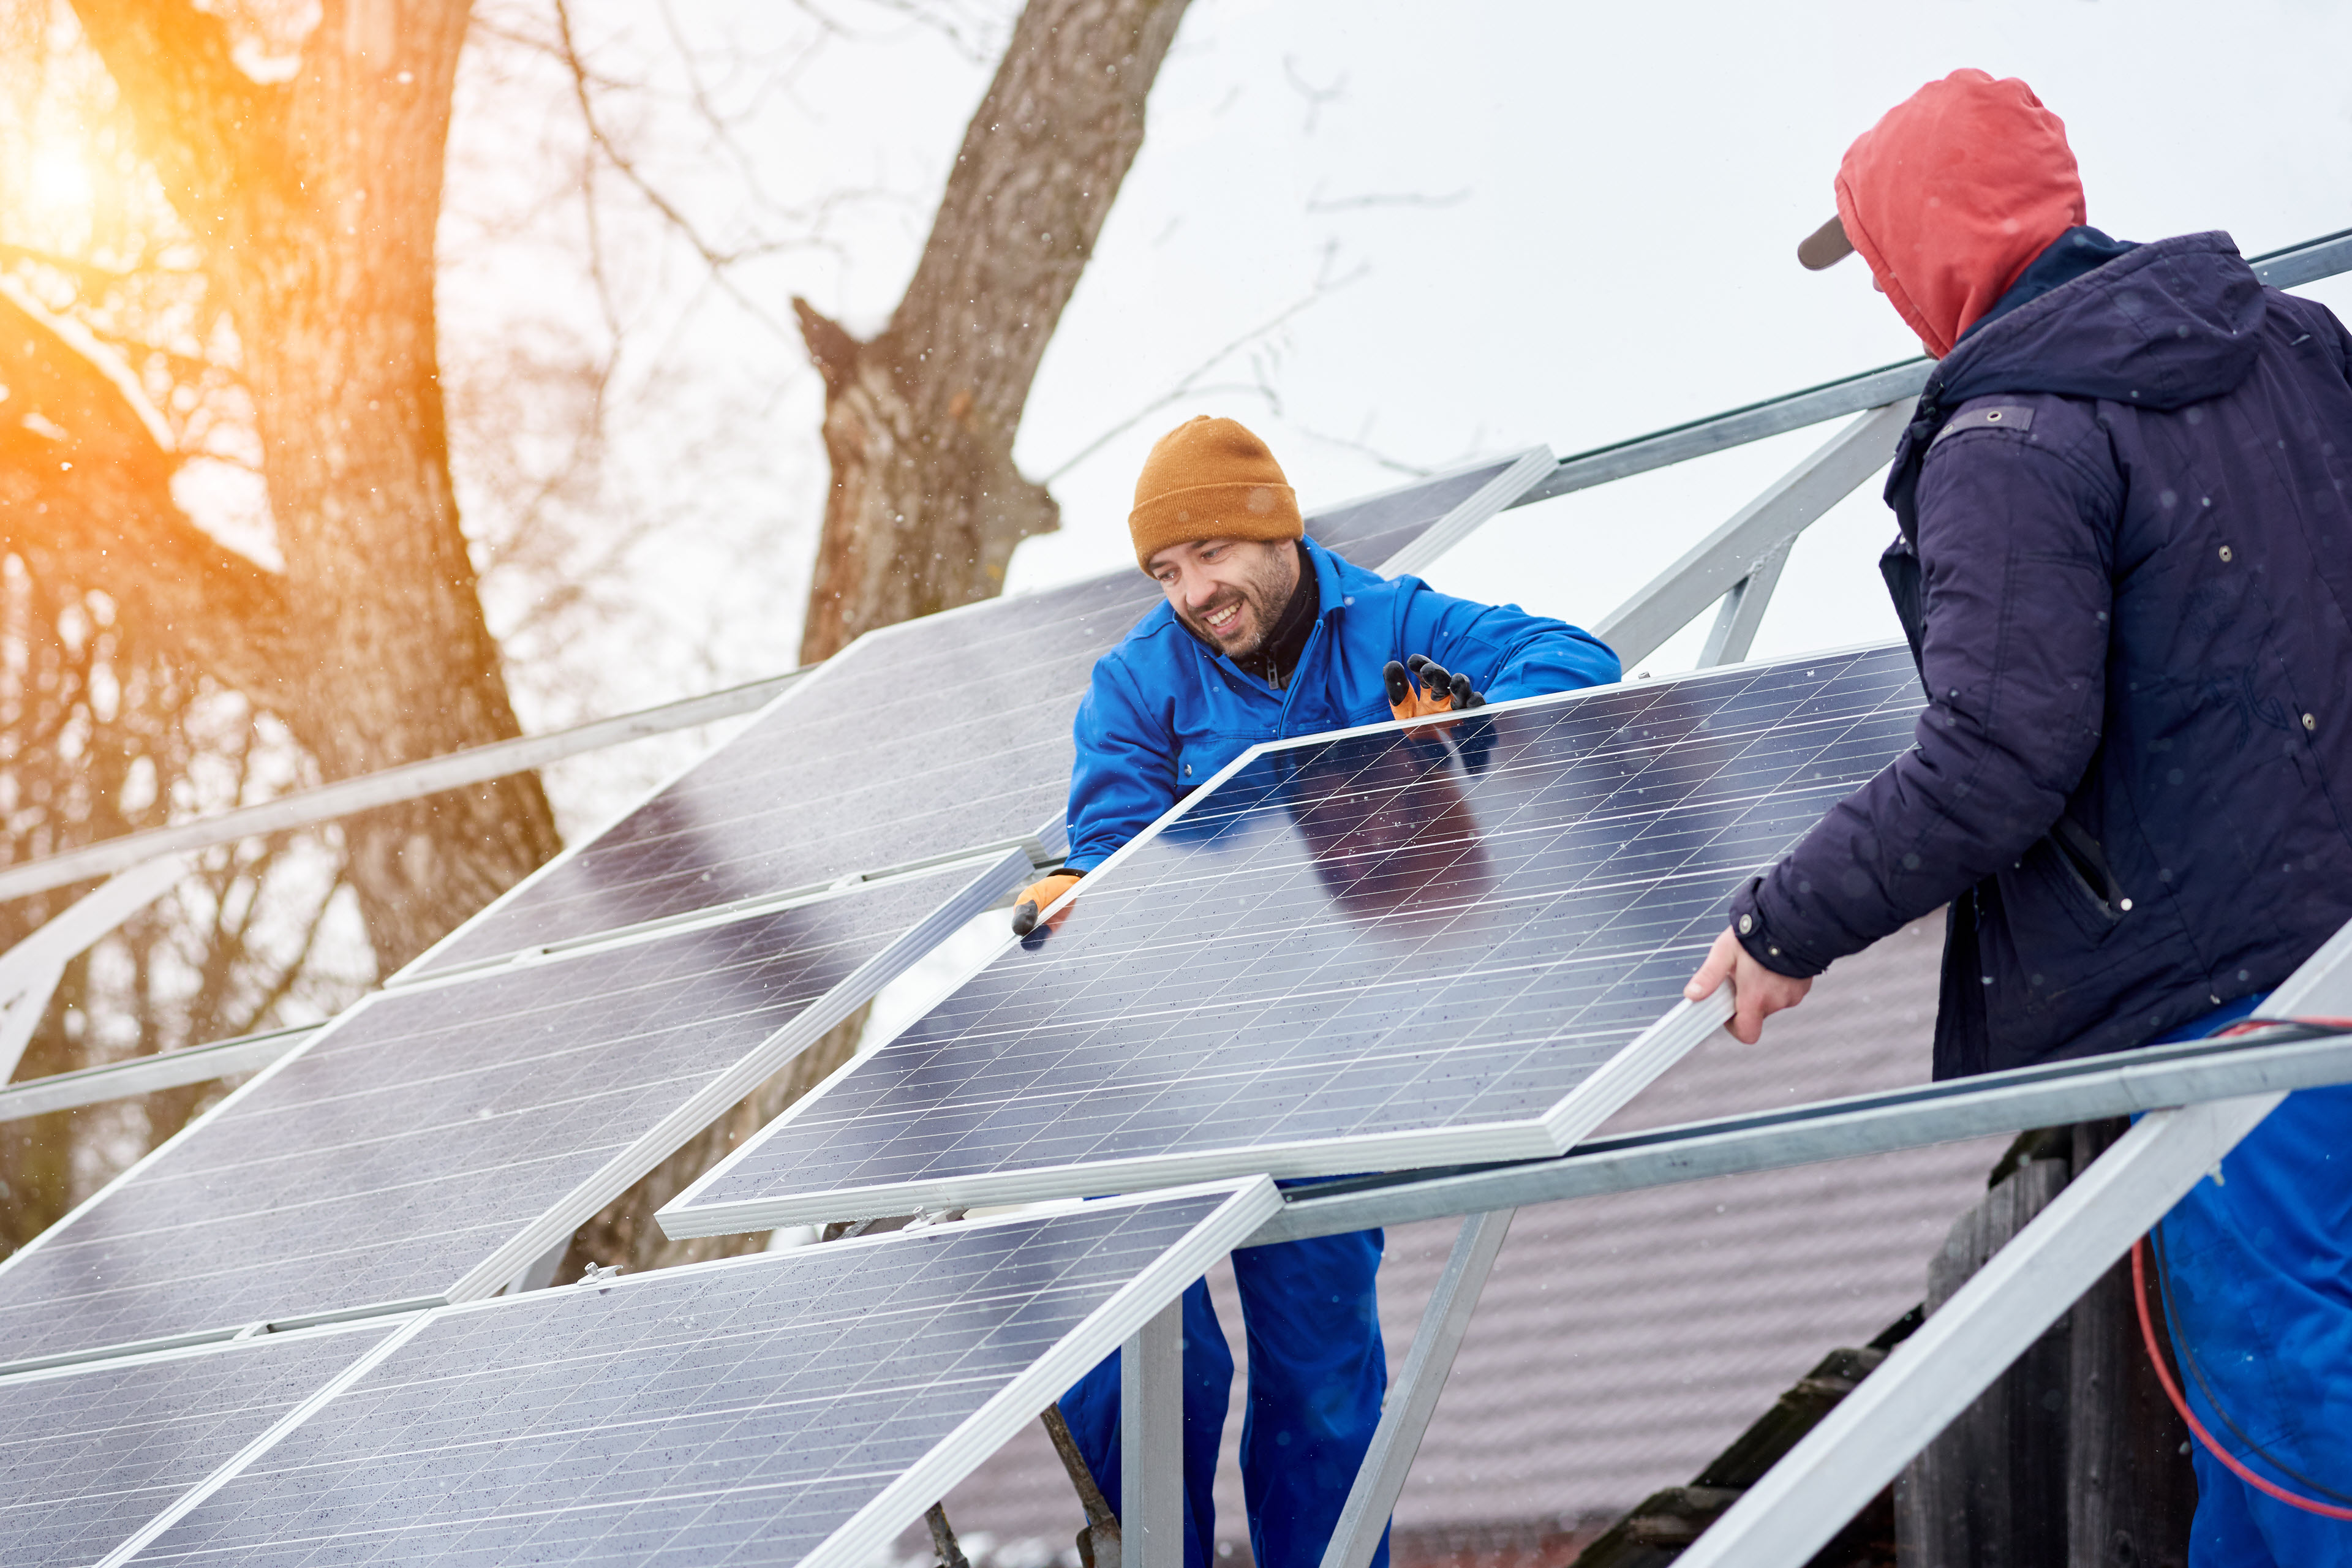 two people installing solar panels